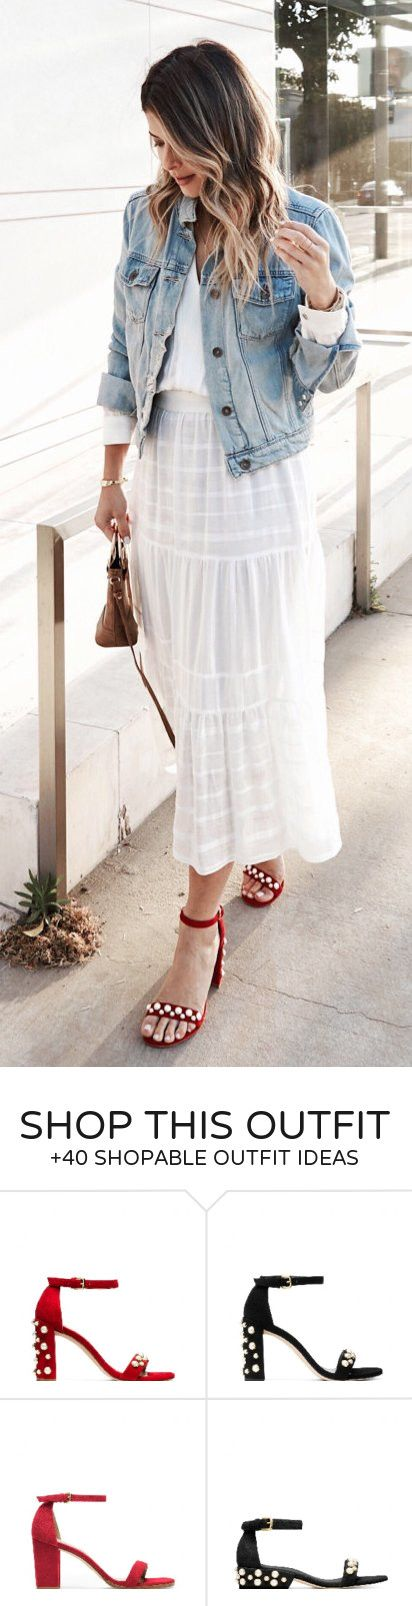 #summer #outfits  I'm Going To Live In These Sandals All Summer Long! // Denim Jacket   White Lace Maxi Skirt   Red Sandals